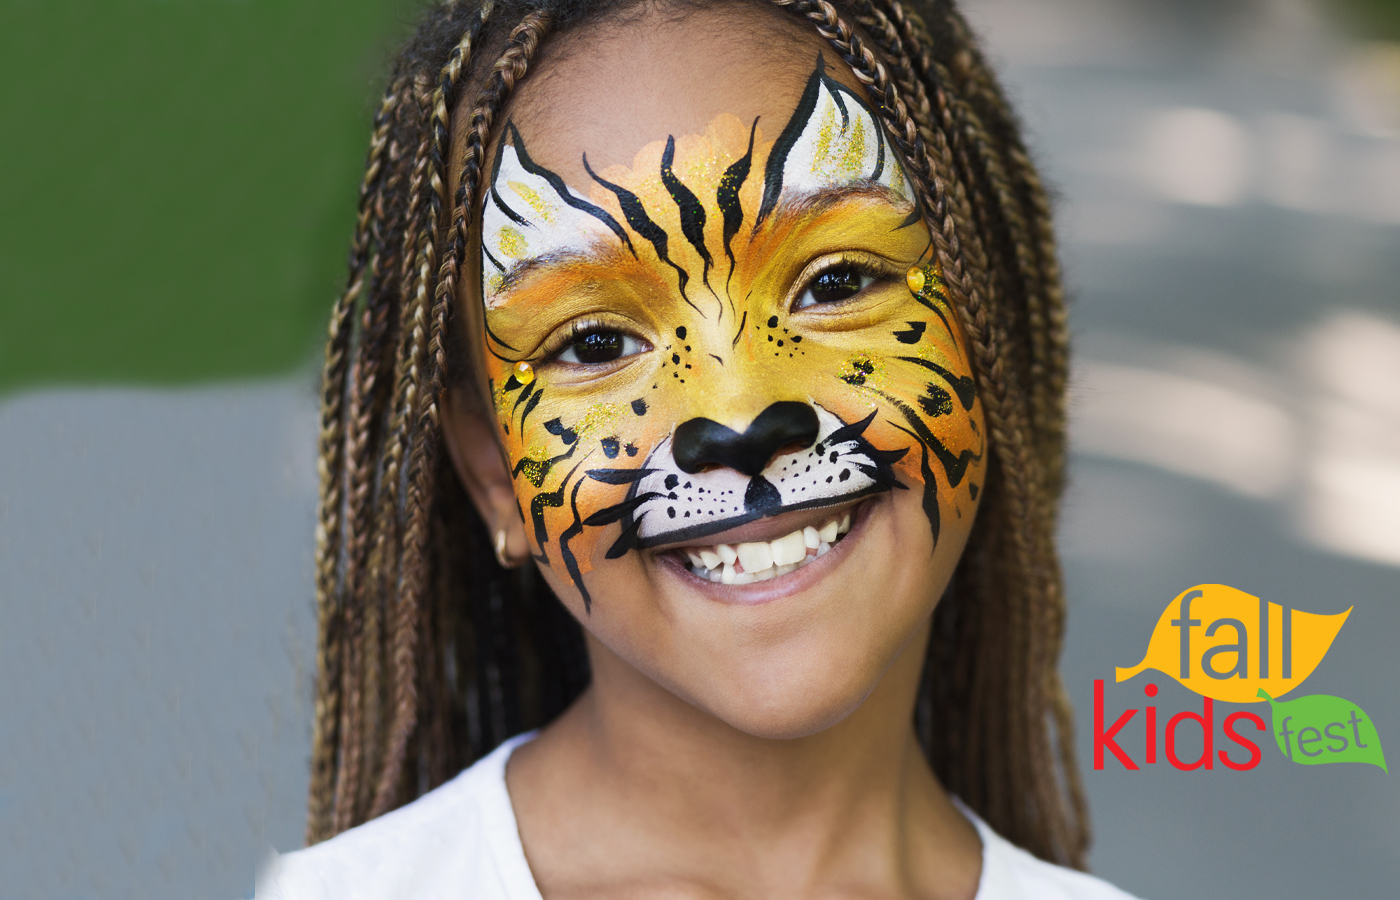 Fall Kids Fest is This Coming Saturday, NOV. 2!